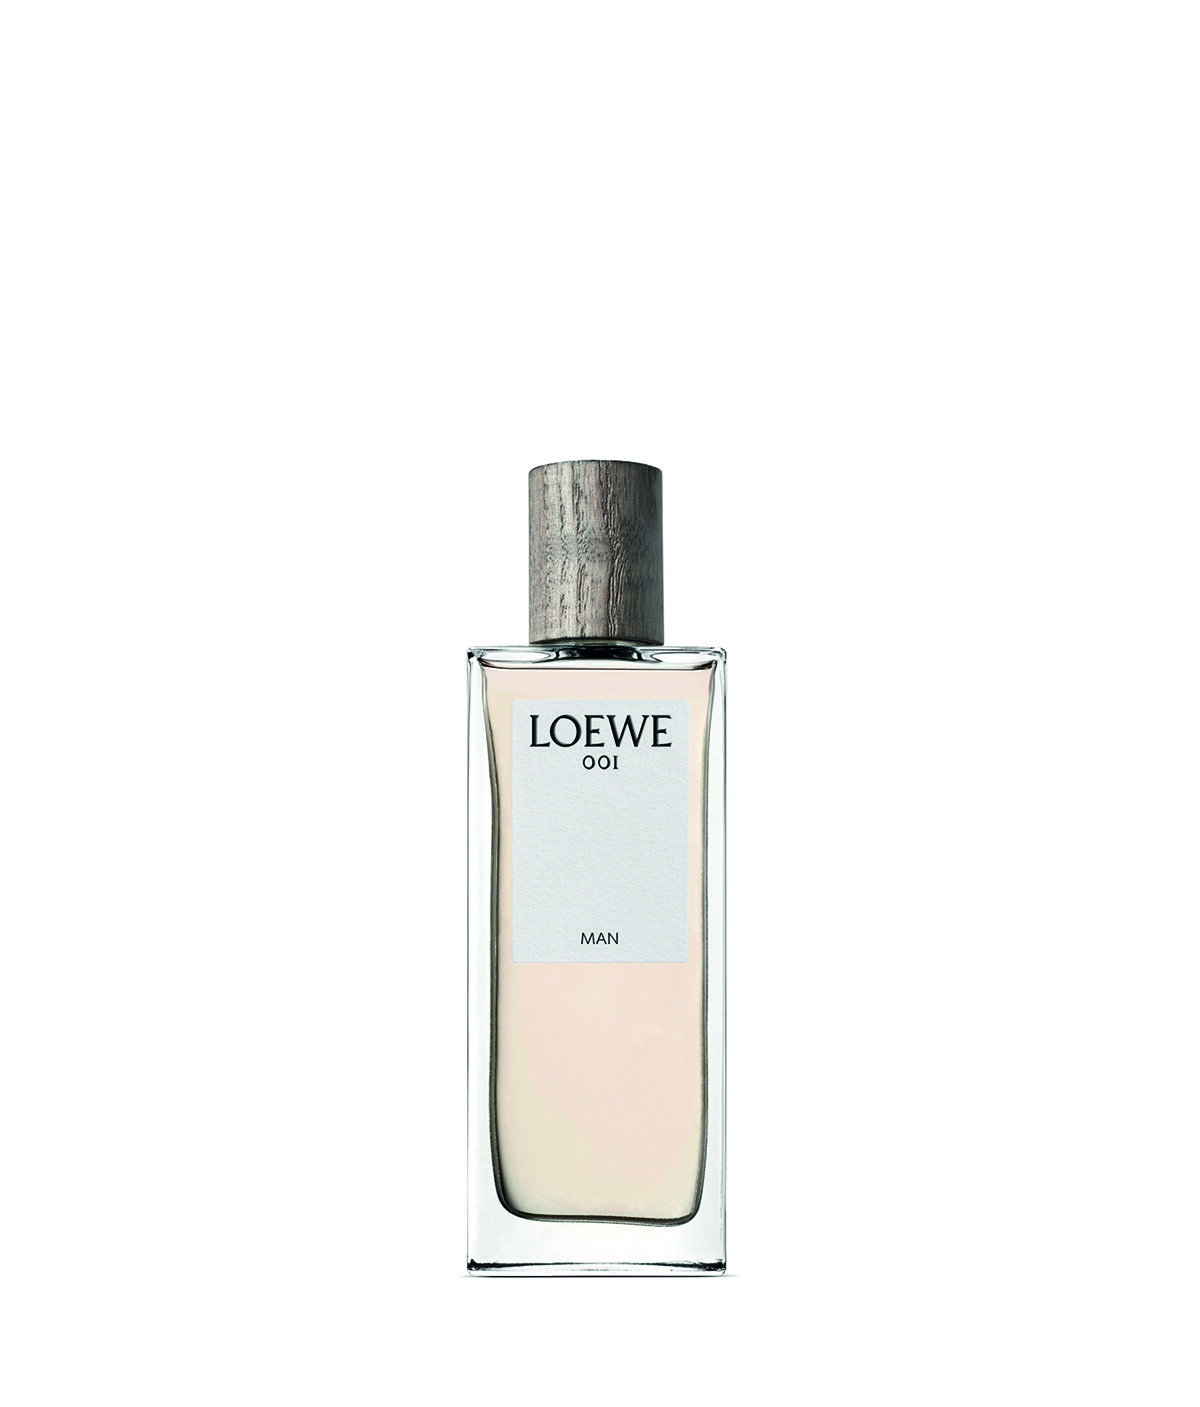 LOEWE Loewe 001 Man Edp 50Ml Sin Color front